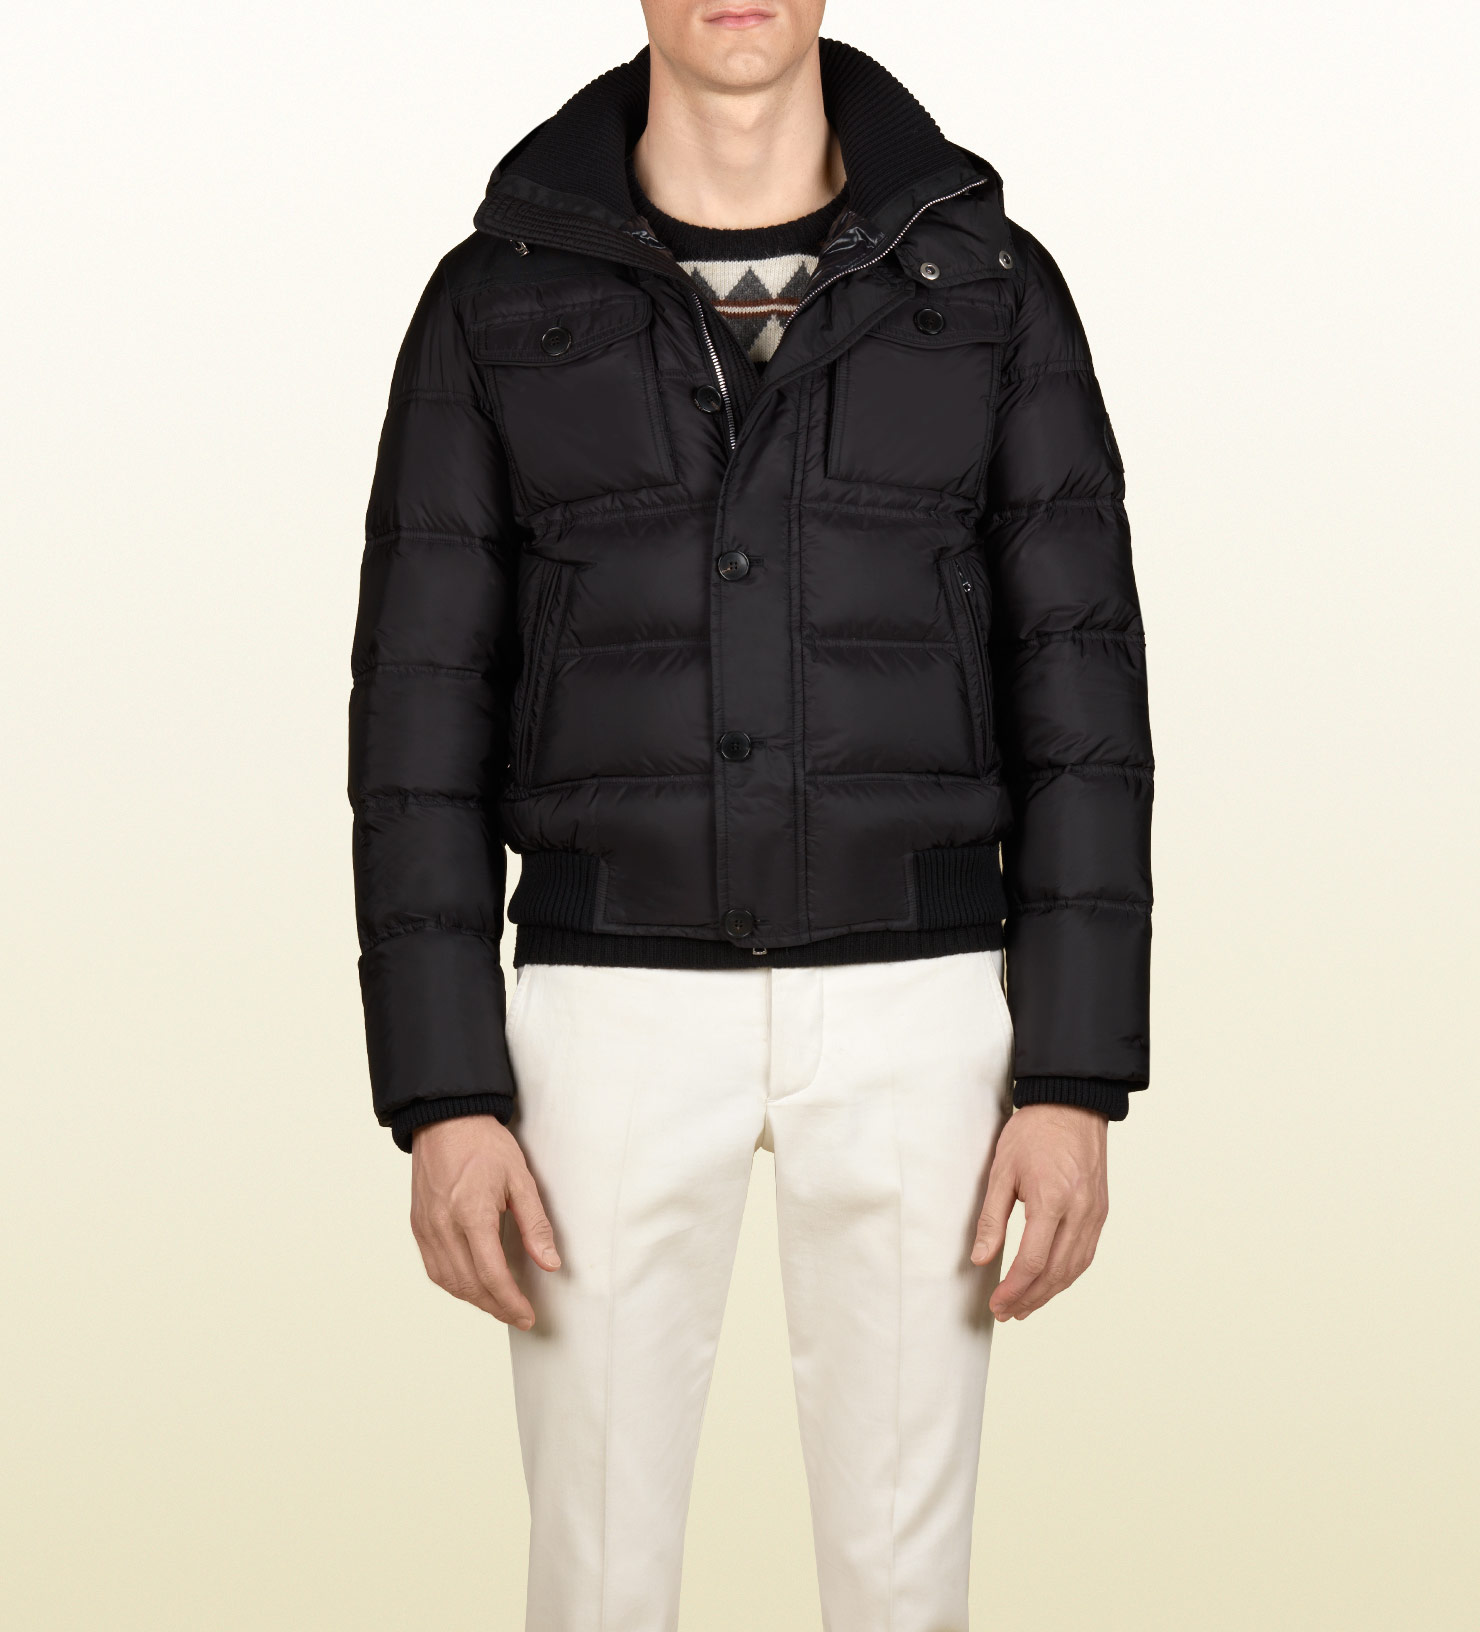 bbb3bbe8d0f4 Lyst - Gucci Crest Patch Quilted Jacket in Black for Men